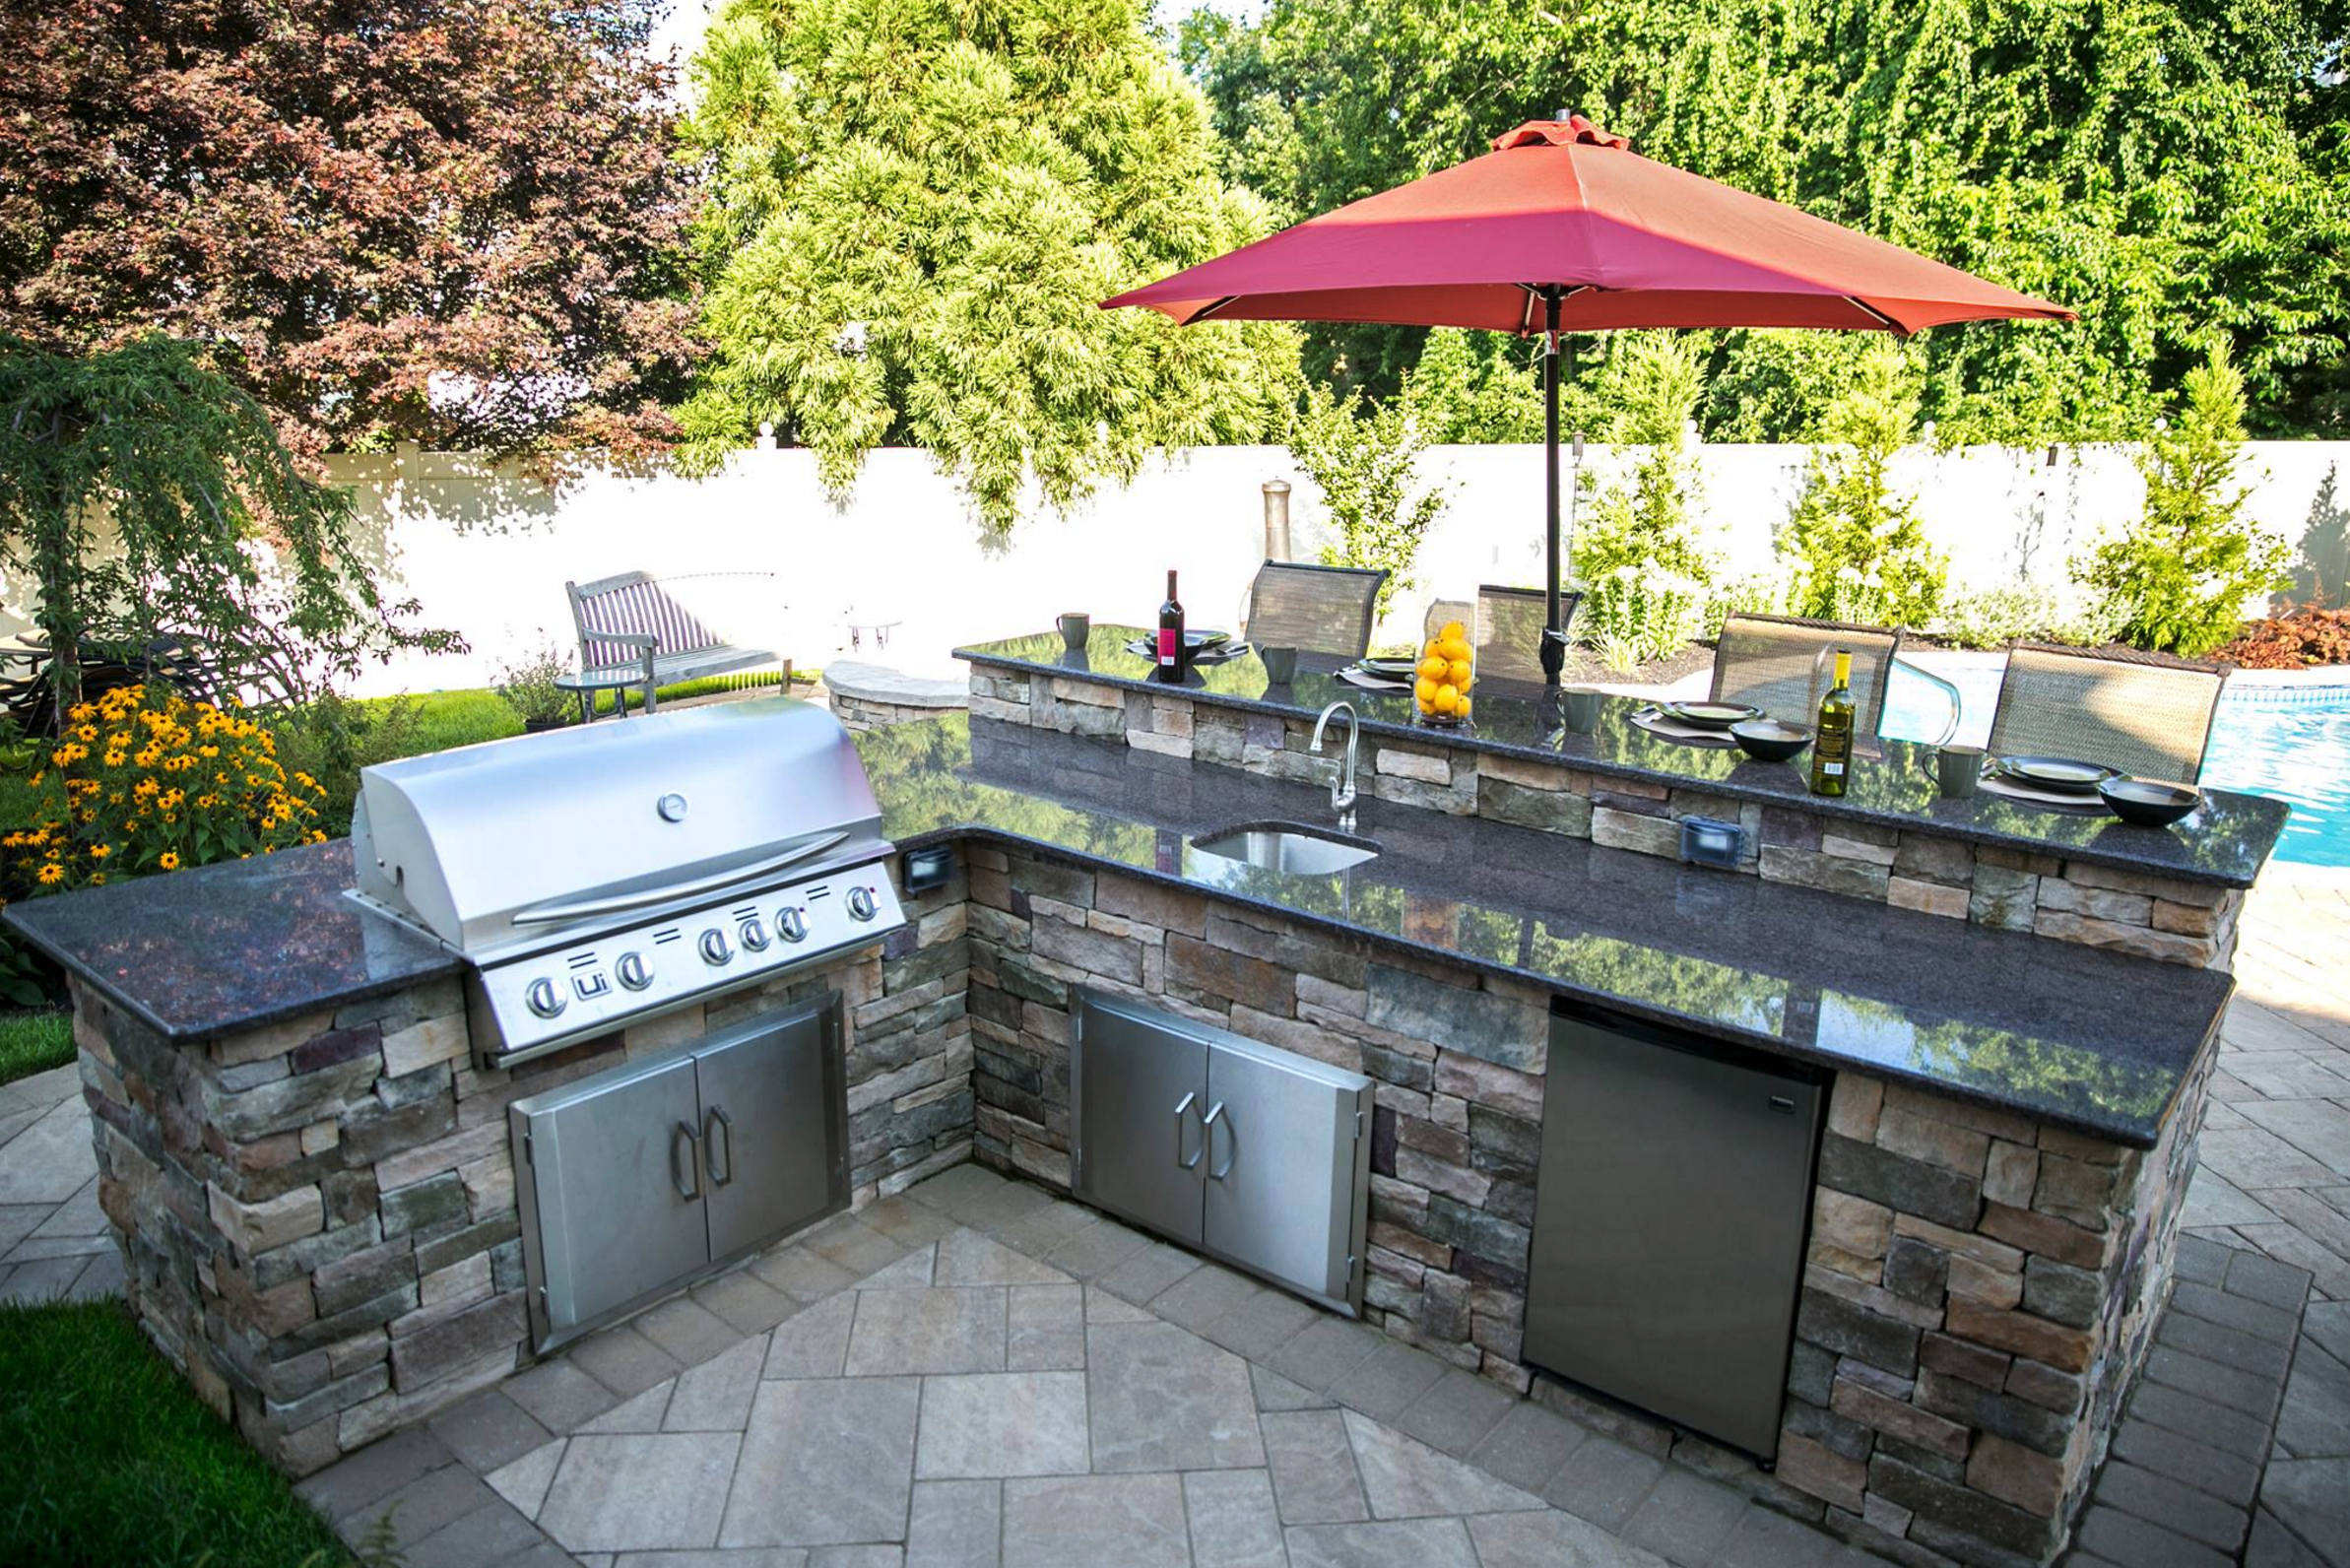 Landscape Architecture and Design in Brookhaven, NY